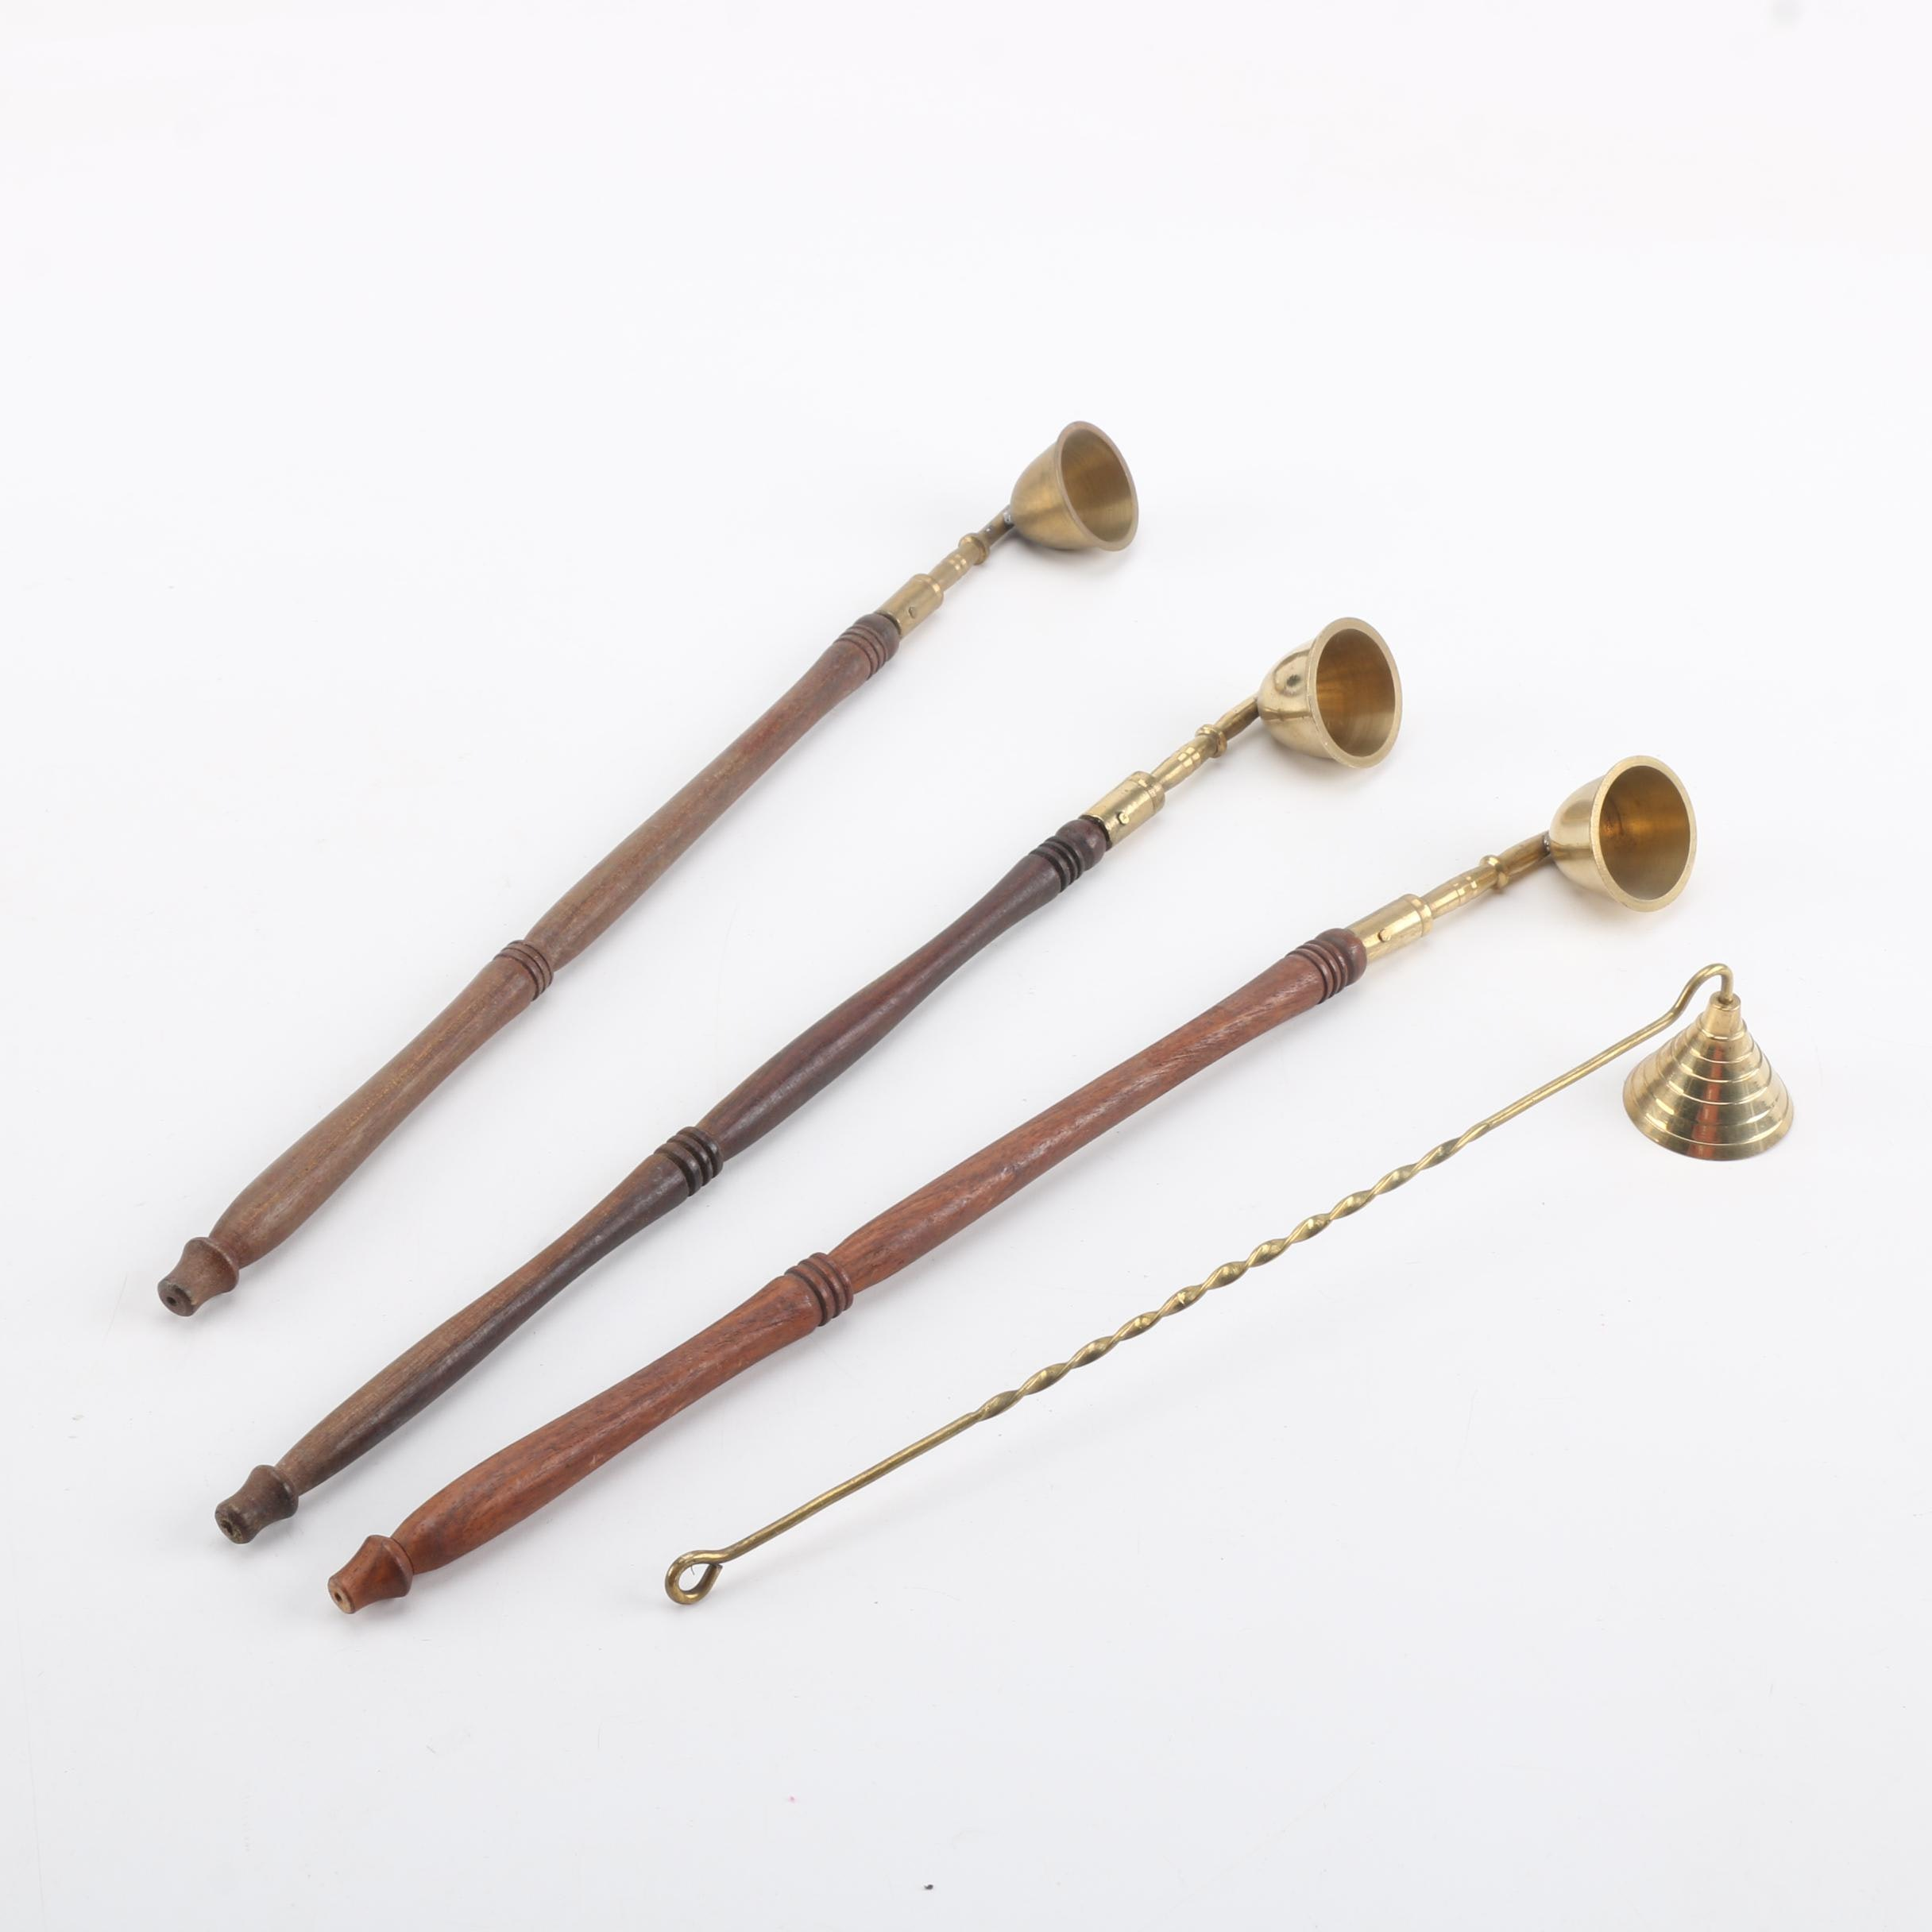 Four Brass Candle Snuffers